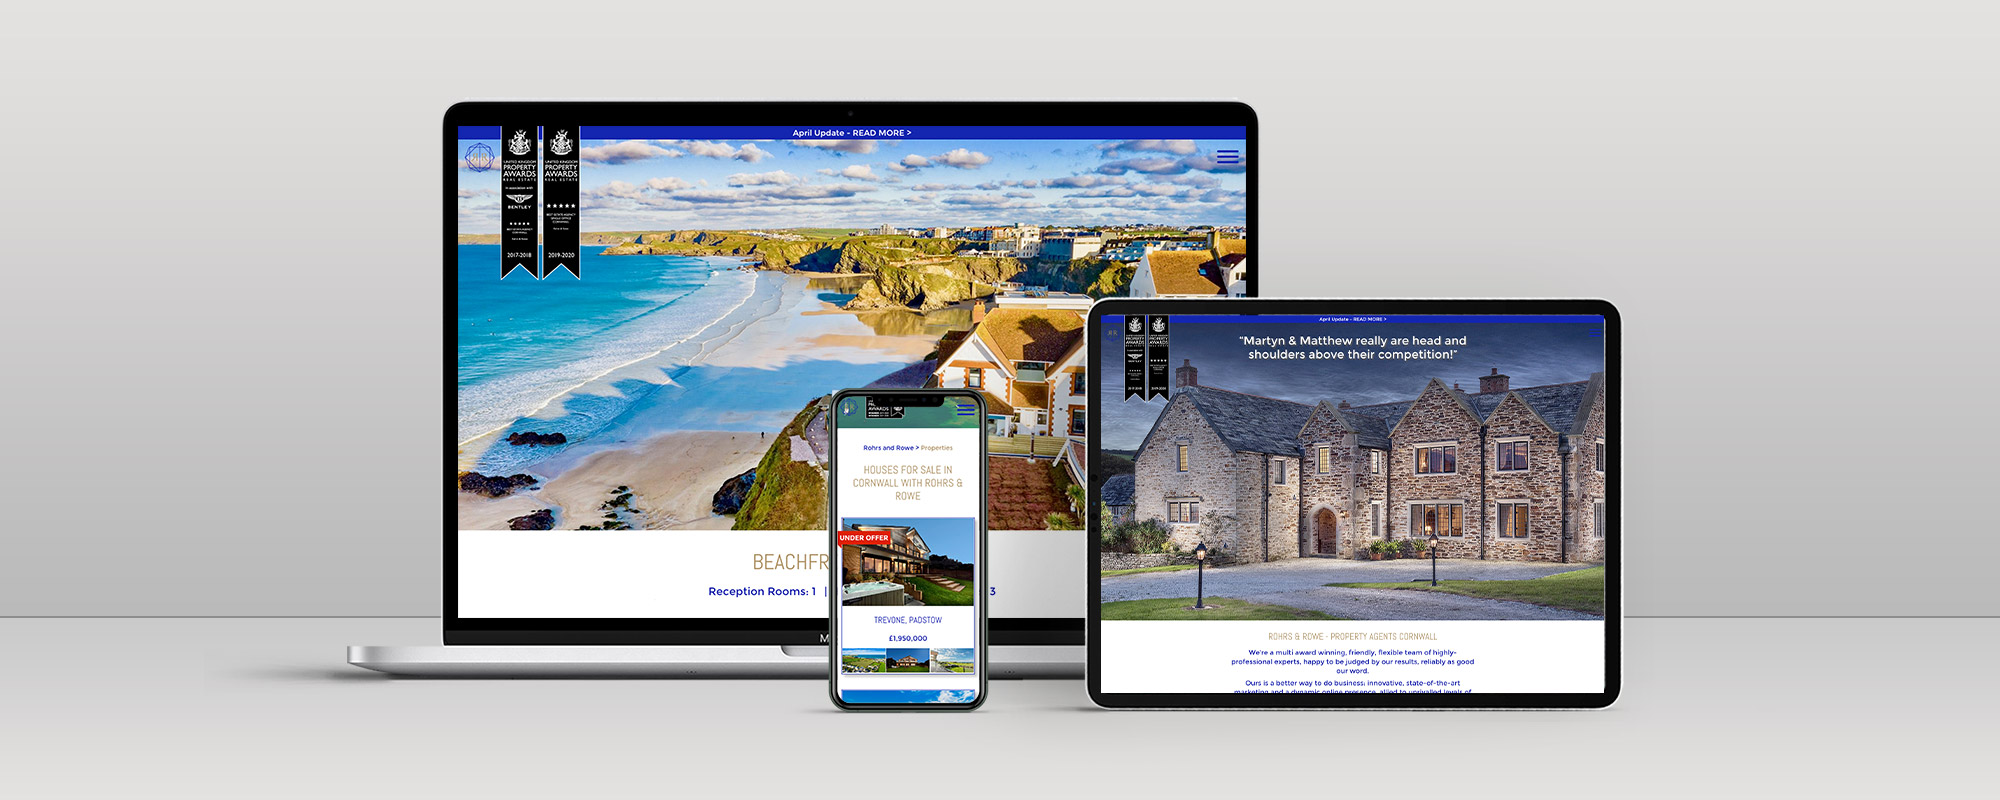 Rohrs & Rowe Wordpress Website Design on 3 Devices